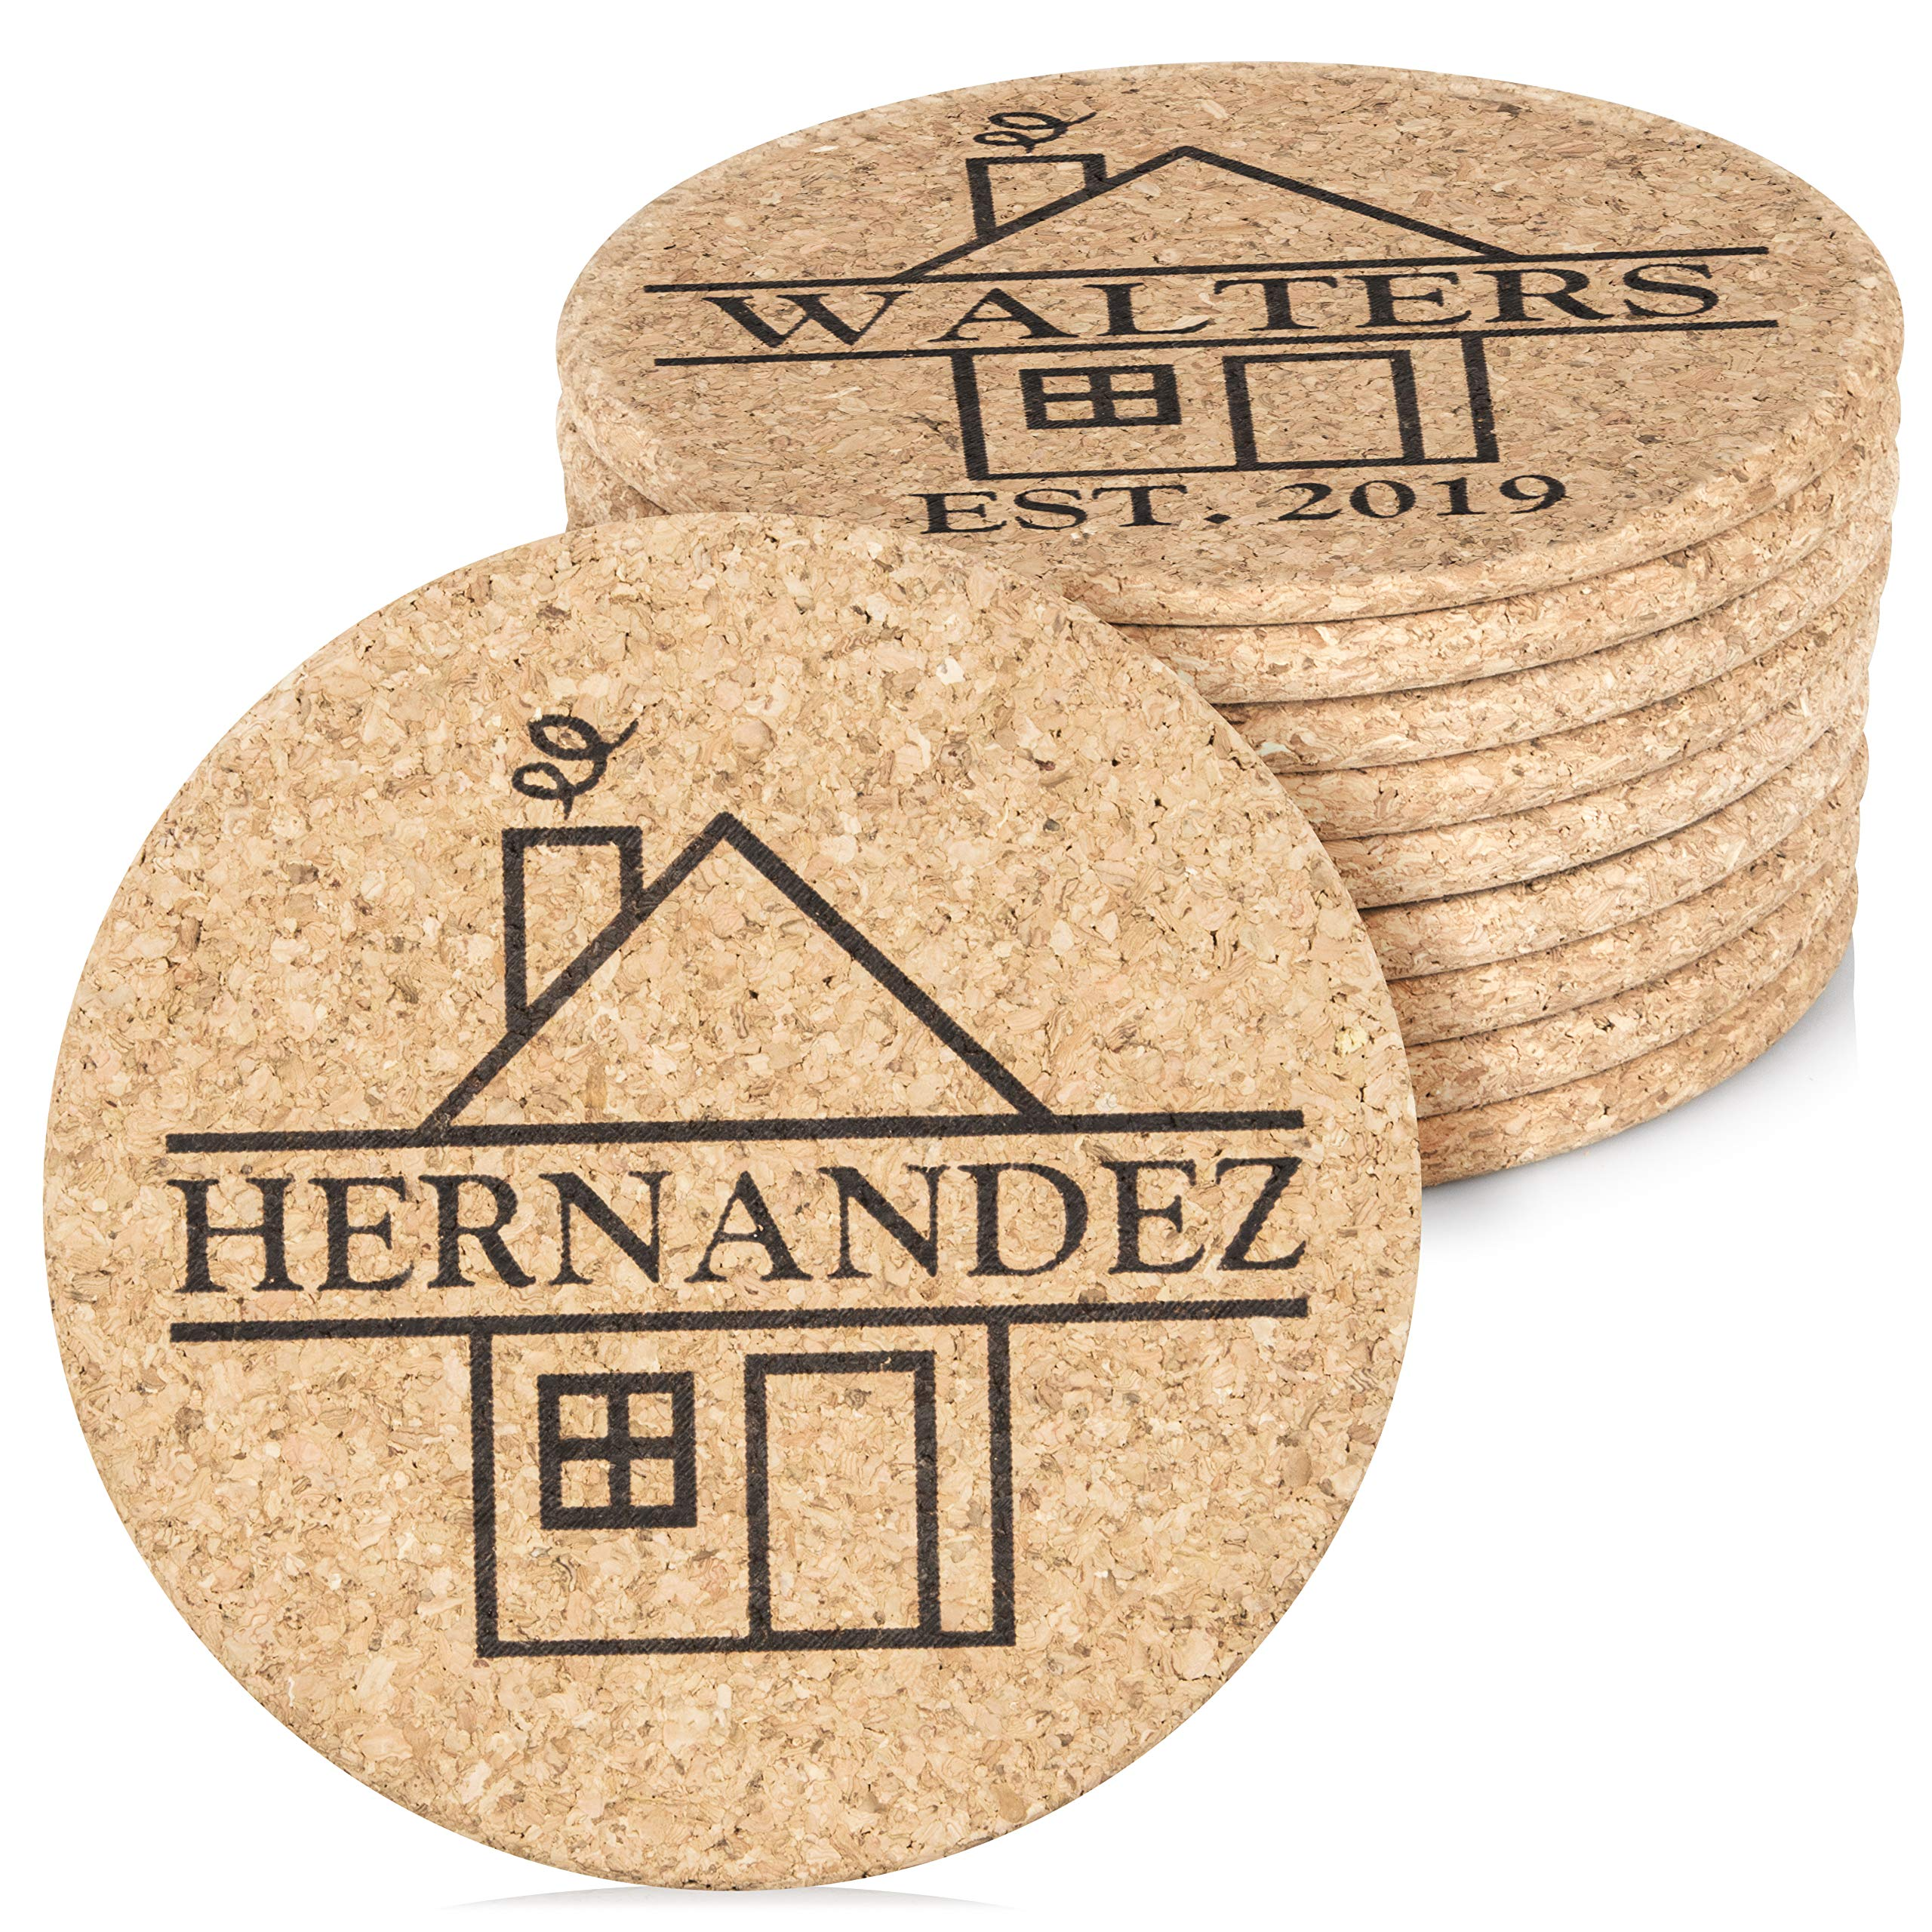 Personalized Cork Trivet Custom Gift - (2) 7'' Hot Pads - Customizable Housewarming Trivets with Home Design for Hot Dishes, Pots, Pans, Baking Sheets, Hot Plates for Table, Countertop, Kitchen by Custom Catch